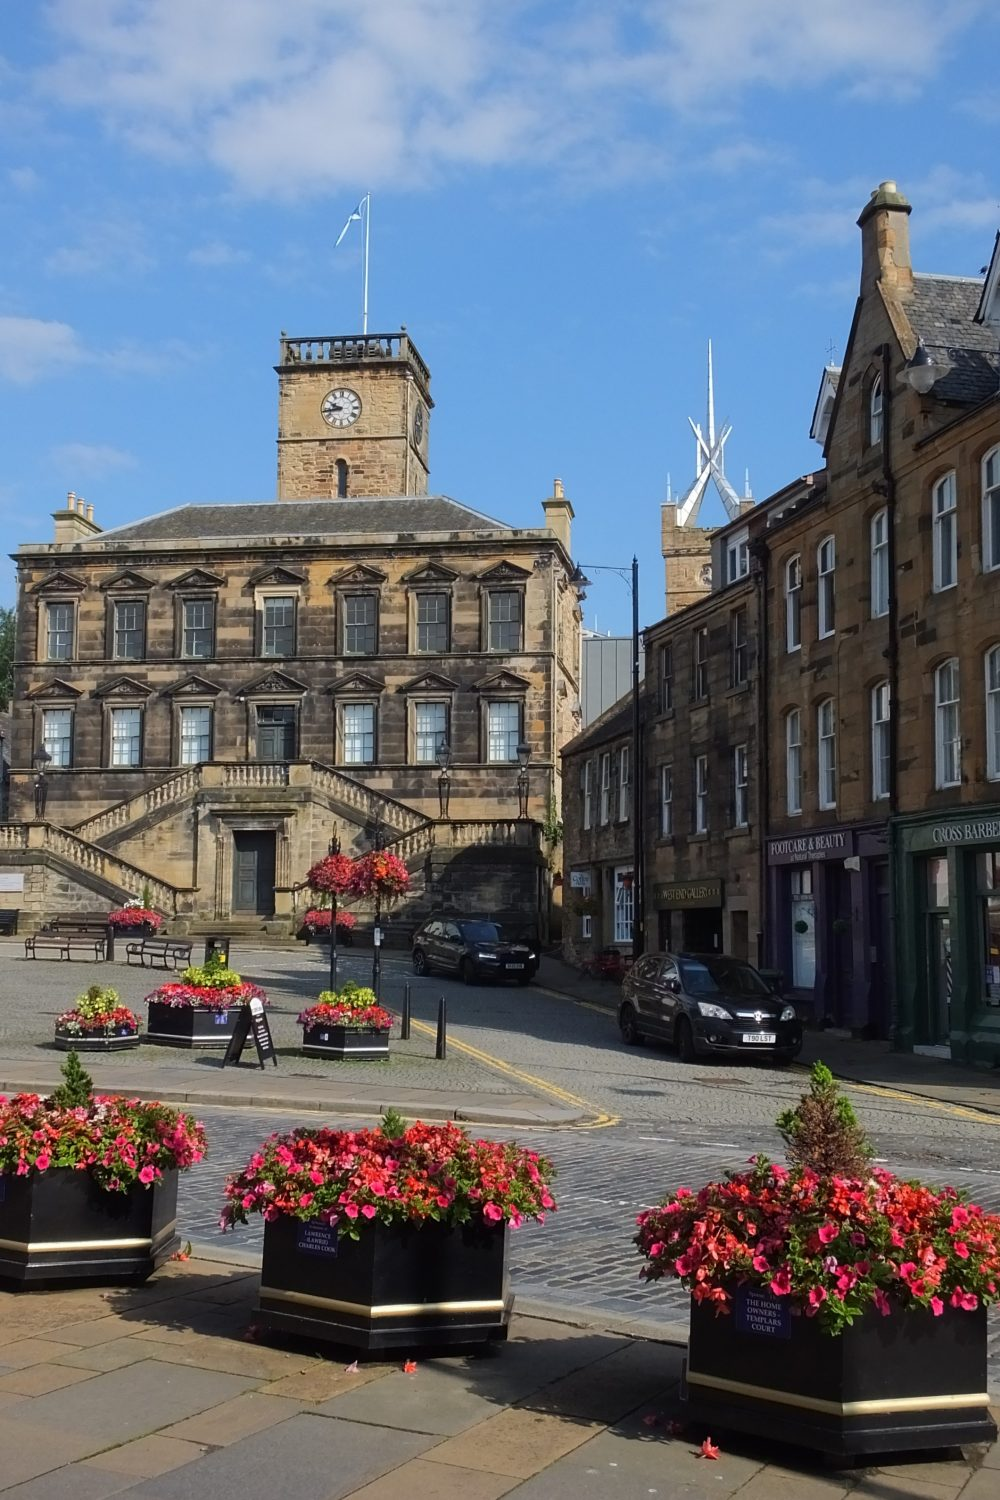 linlithgow town centre buildings and flowers